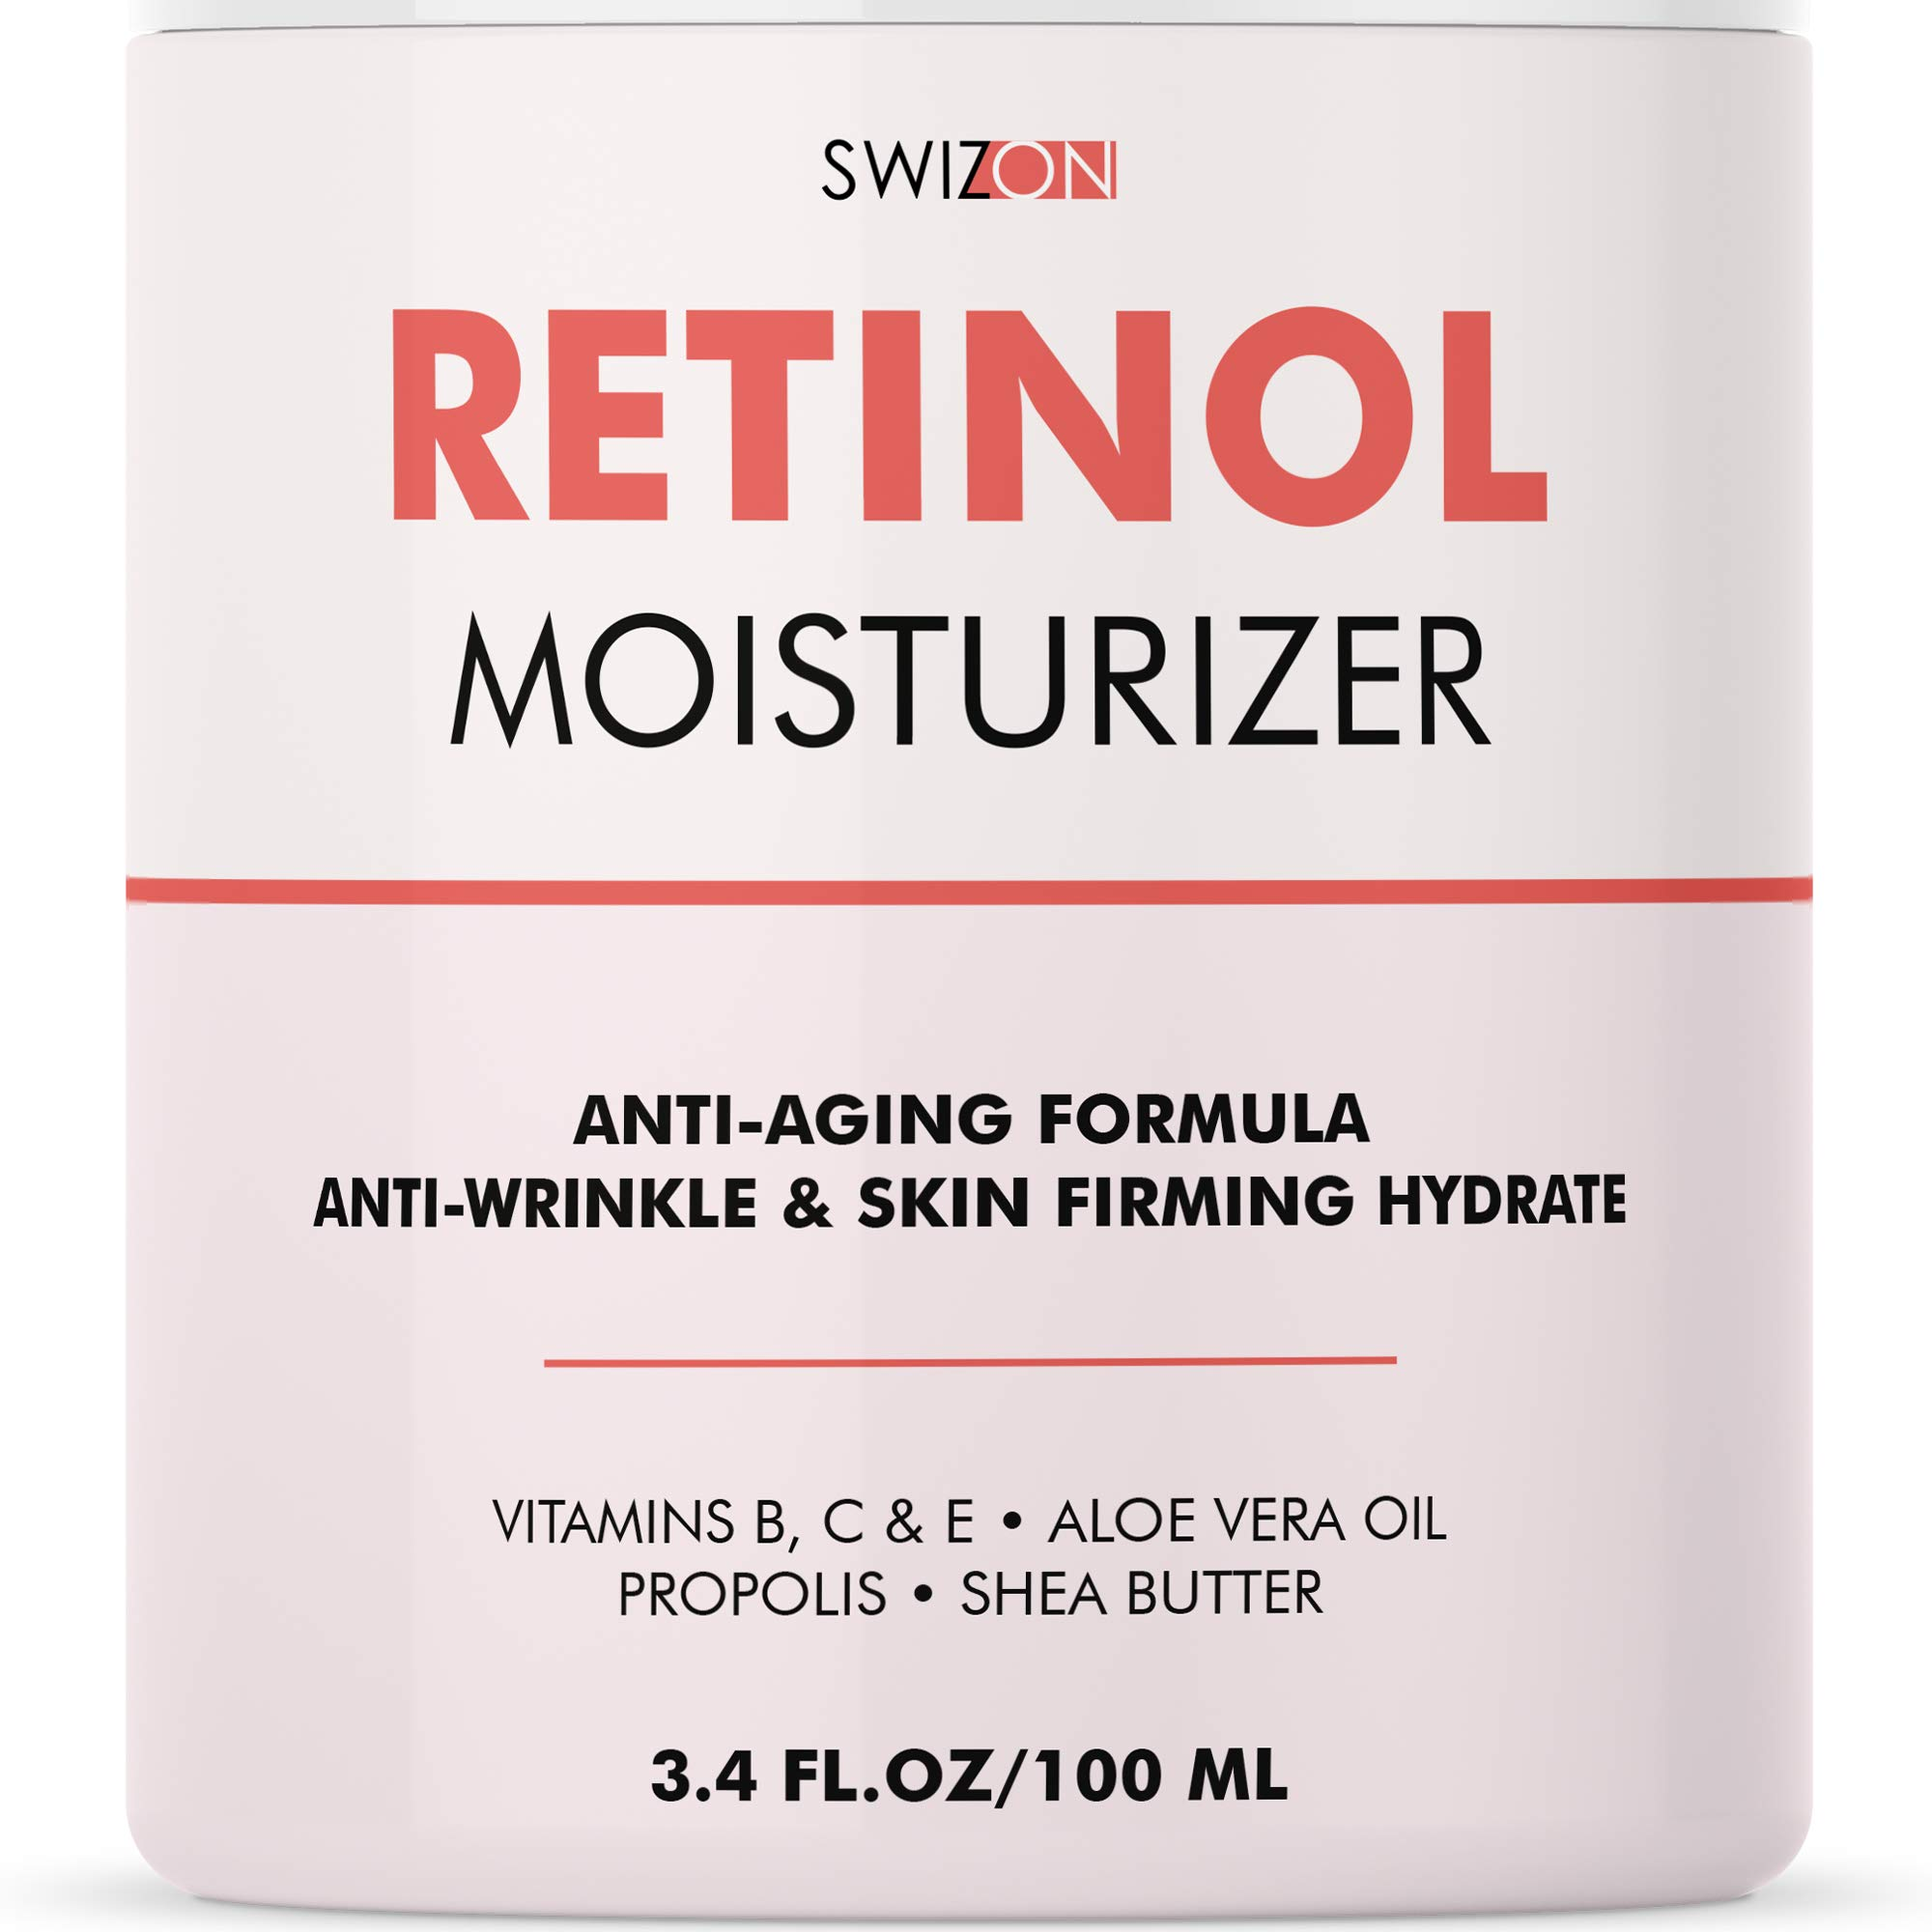 3% Retinol Cream - Natural Moisturizer with Vitamin A, Aloe Vera, Hyaluronic Acid for Face, Neck and Décolleté Skin Care - Best Anti-Aging Wrinkle Cream that Really Works - 3.4oz